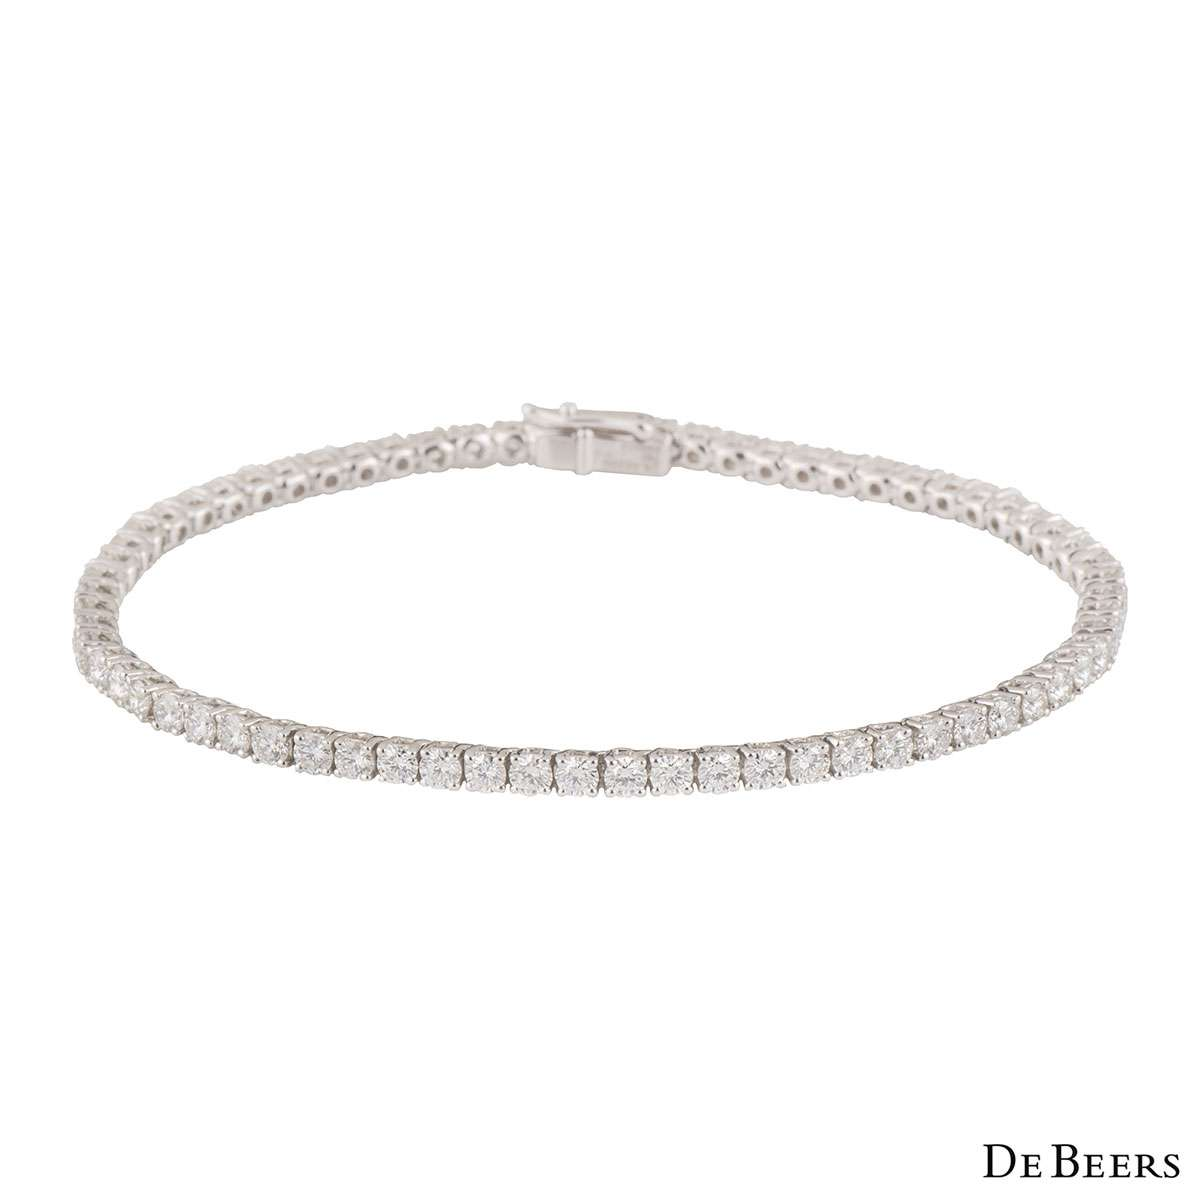 g eternity sale diamond bangles online bracelets tennis bracelet image for h